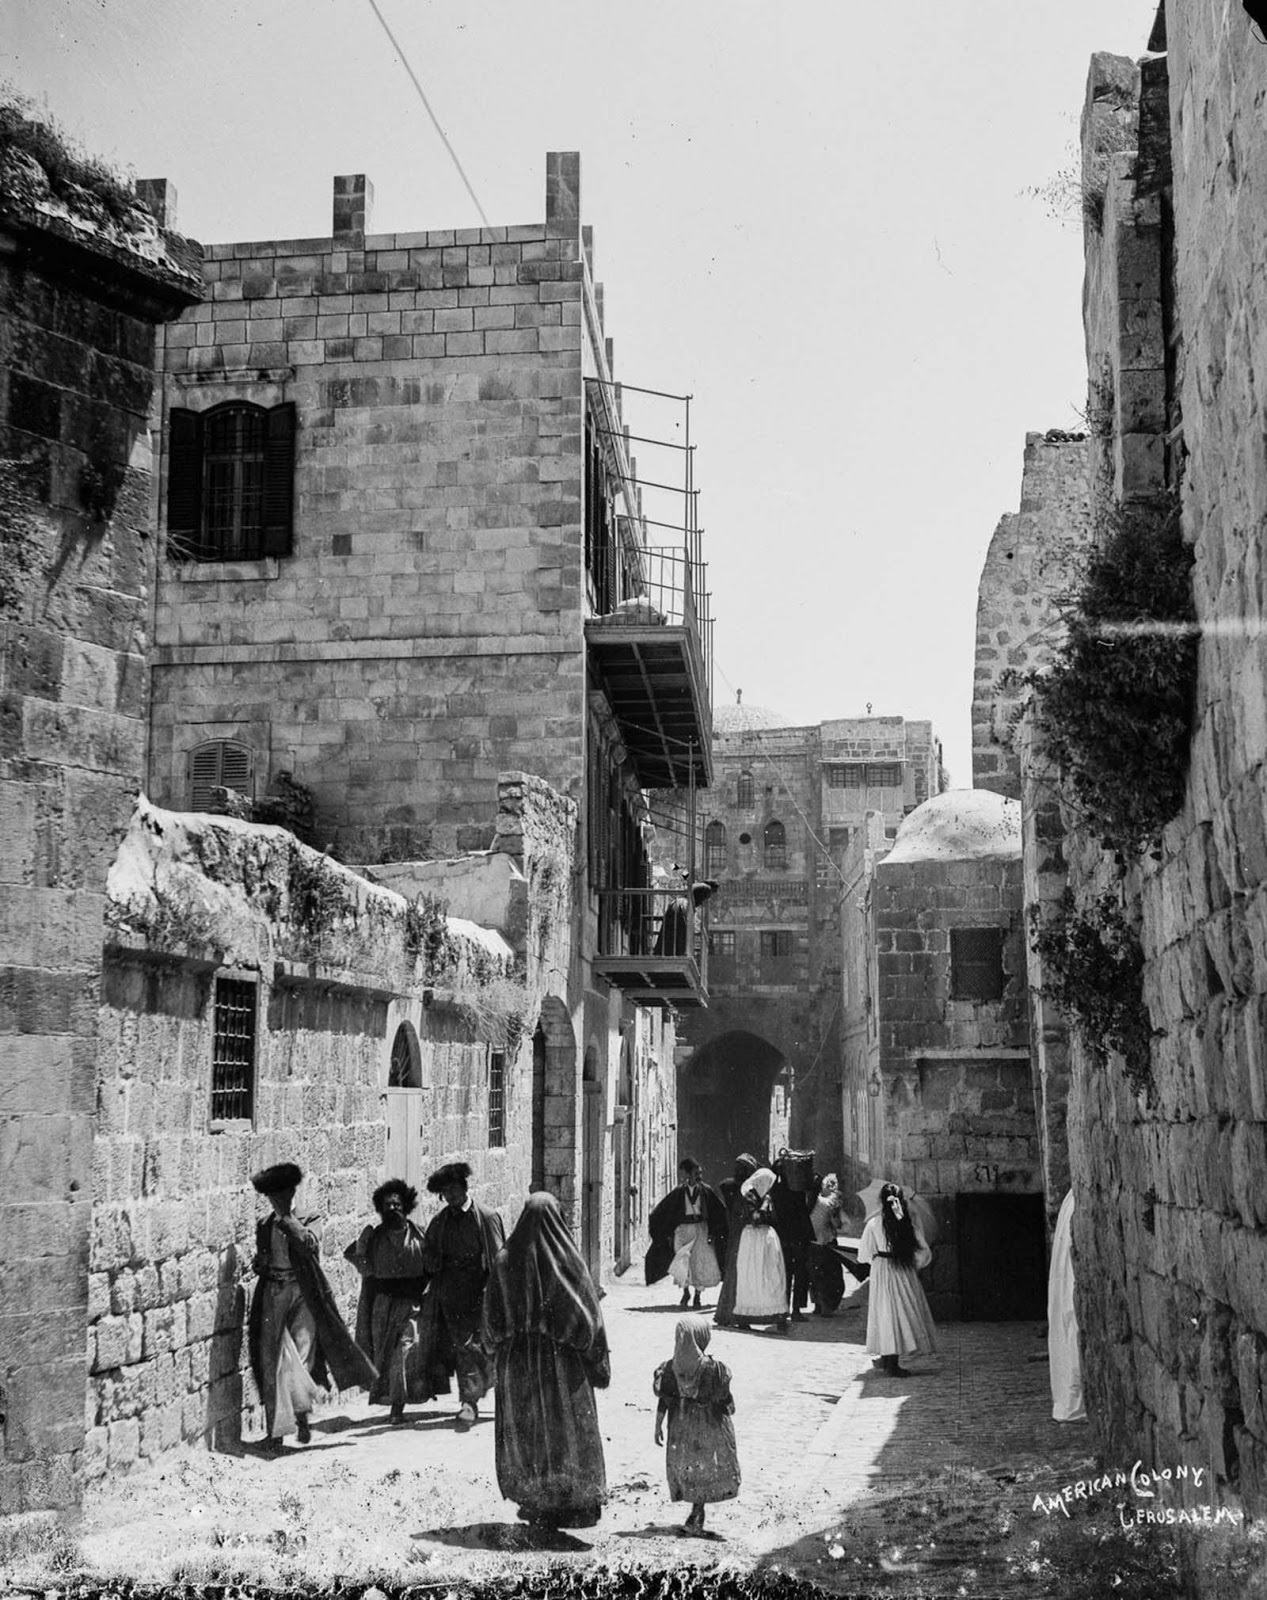 Jews and Muslims of Jerusalem. c. 1900.